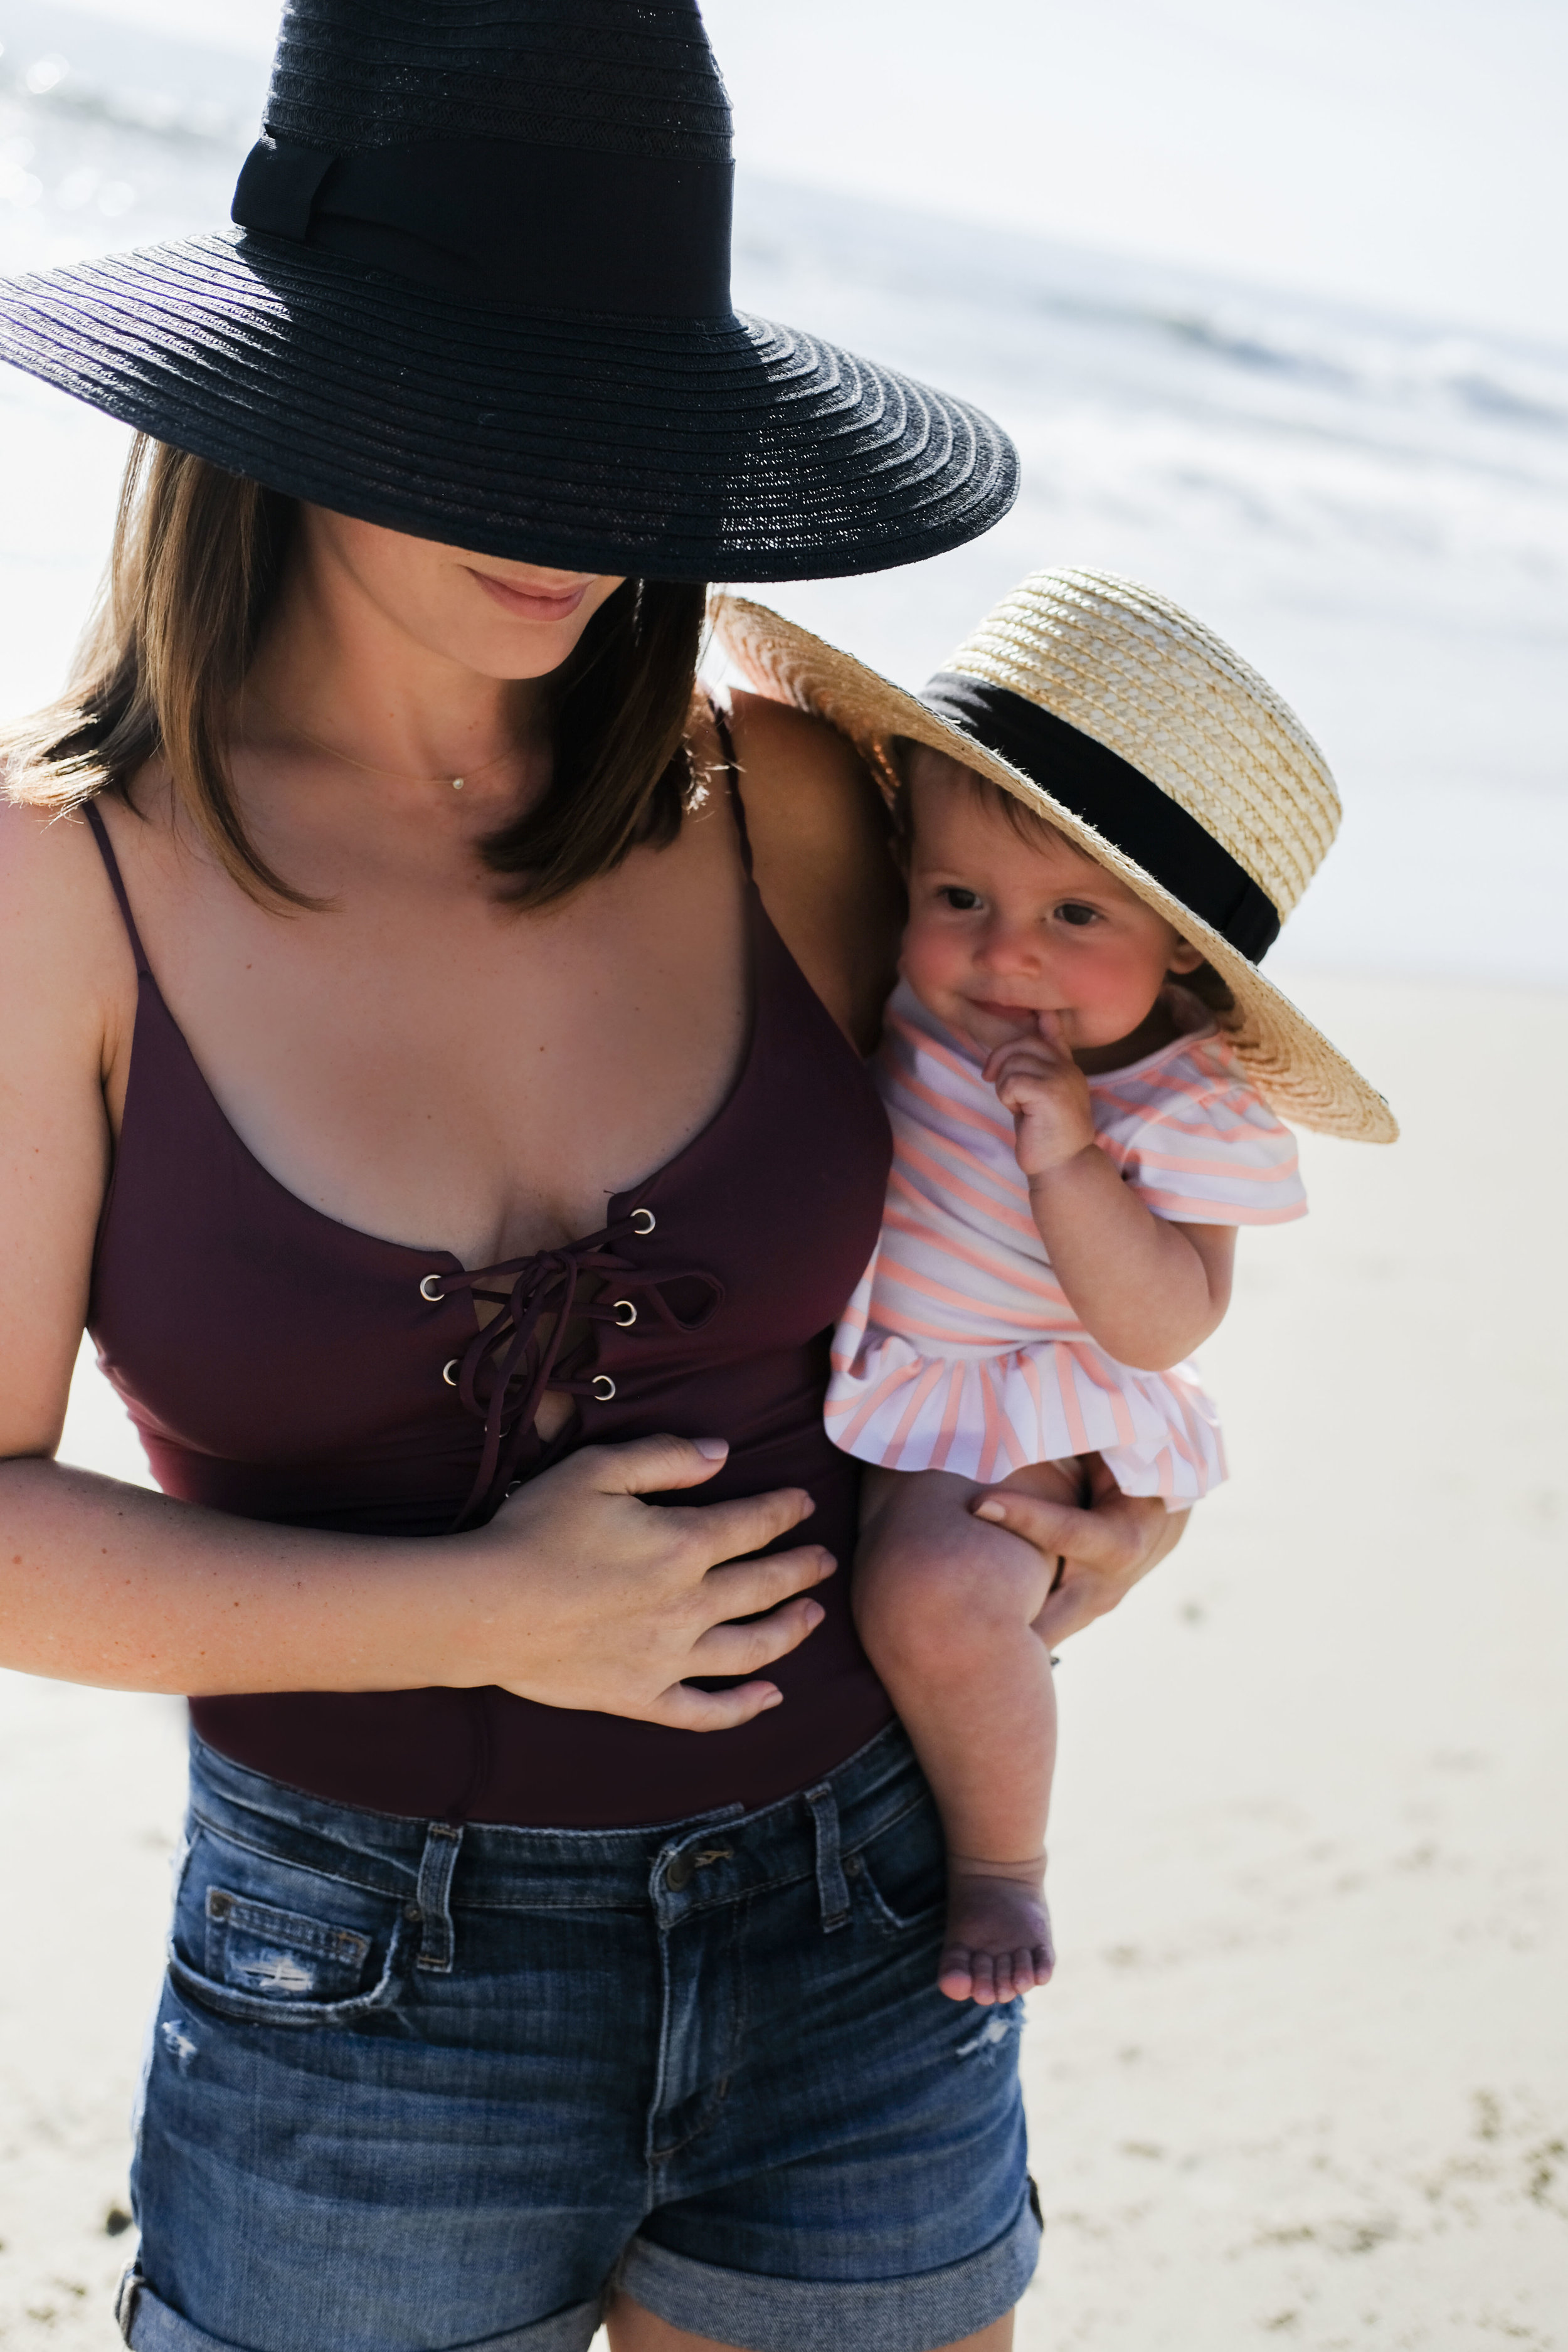 Family portrait on the beach, mom and baby in swimsuits and hats.  Beach family photos.